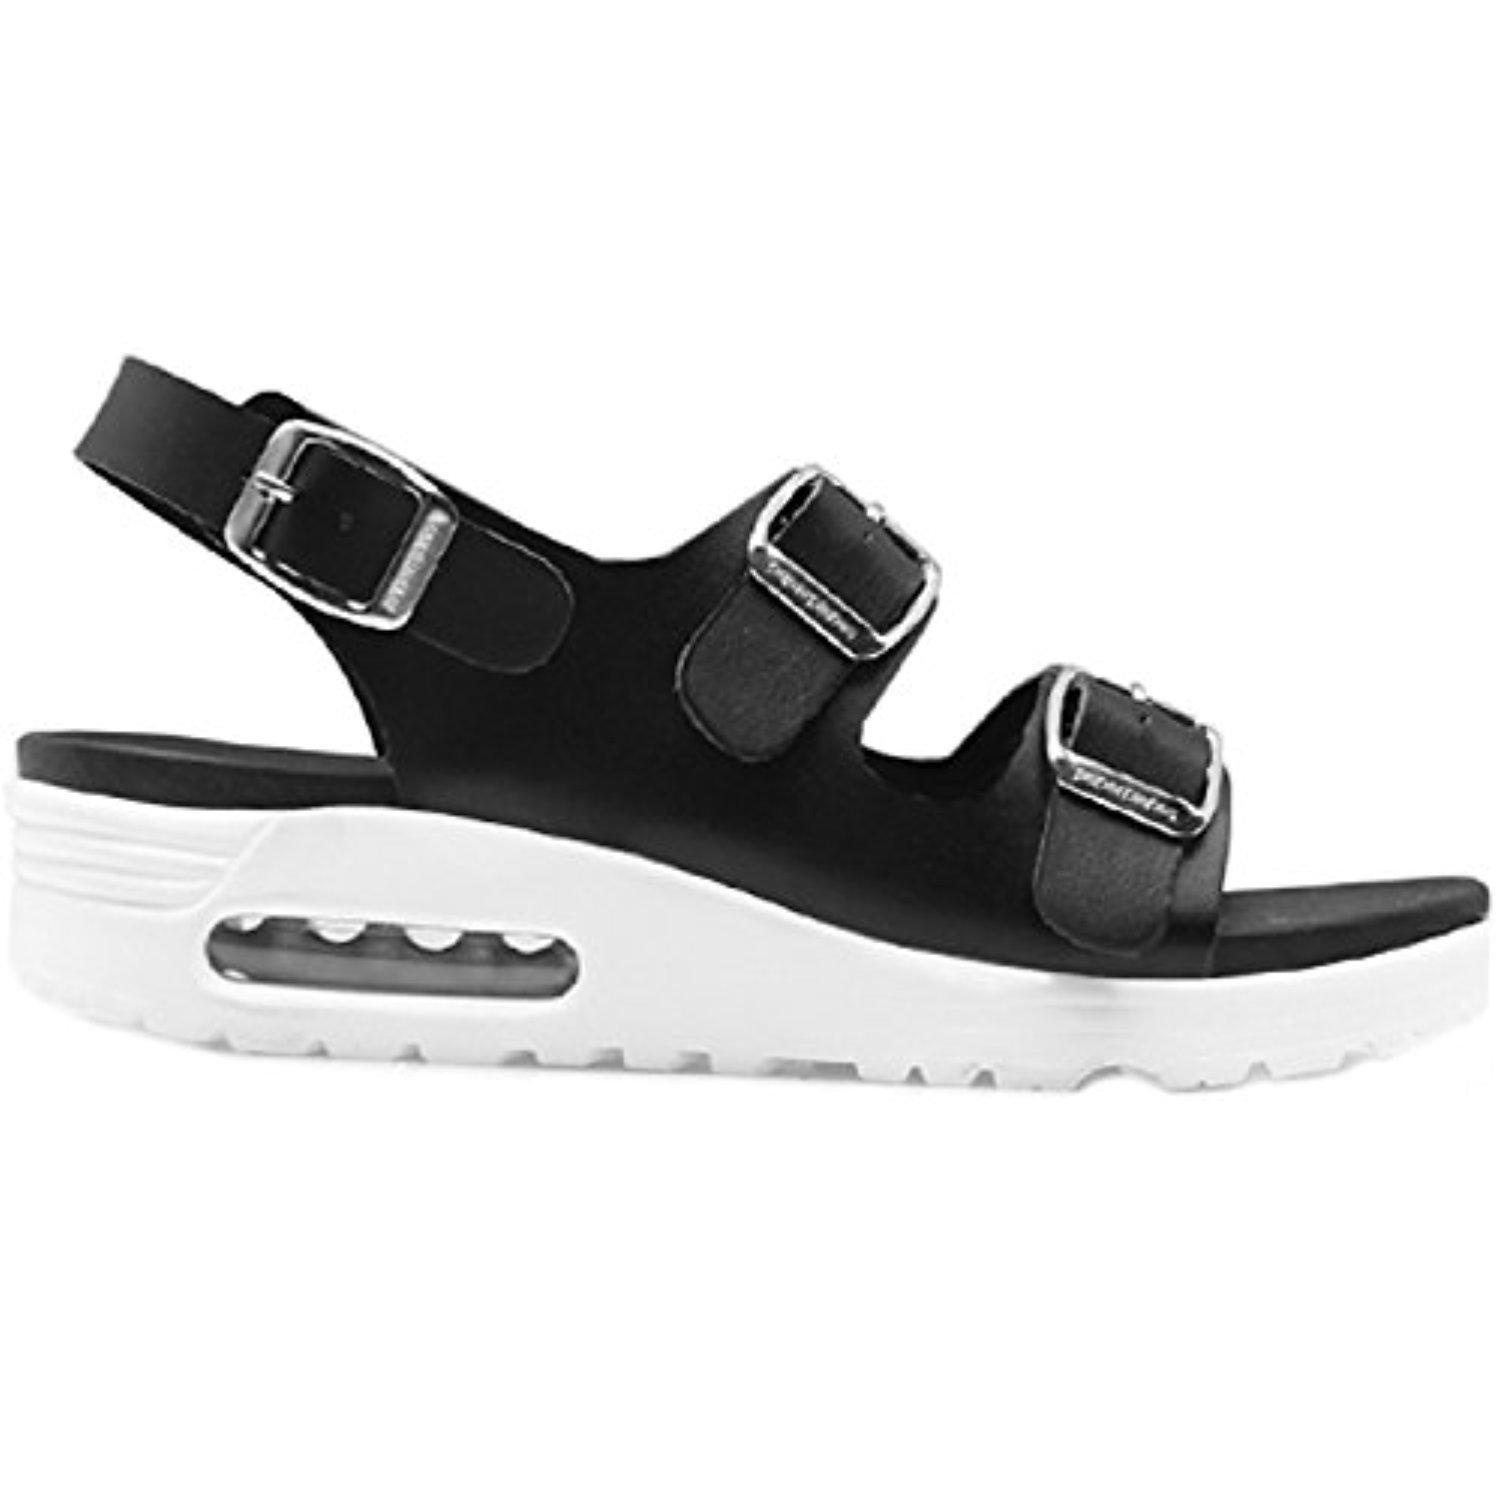 New Paperplanes Air Cushion Women Taller Height Casual Sandals Comfort Shoes (6, Black)